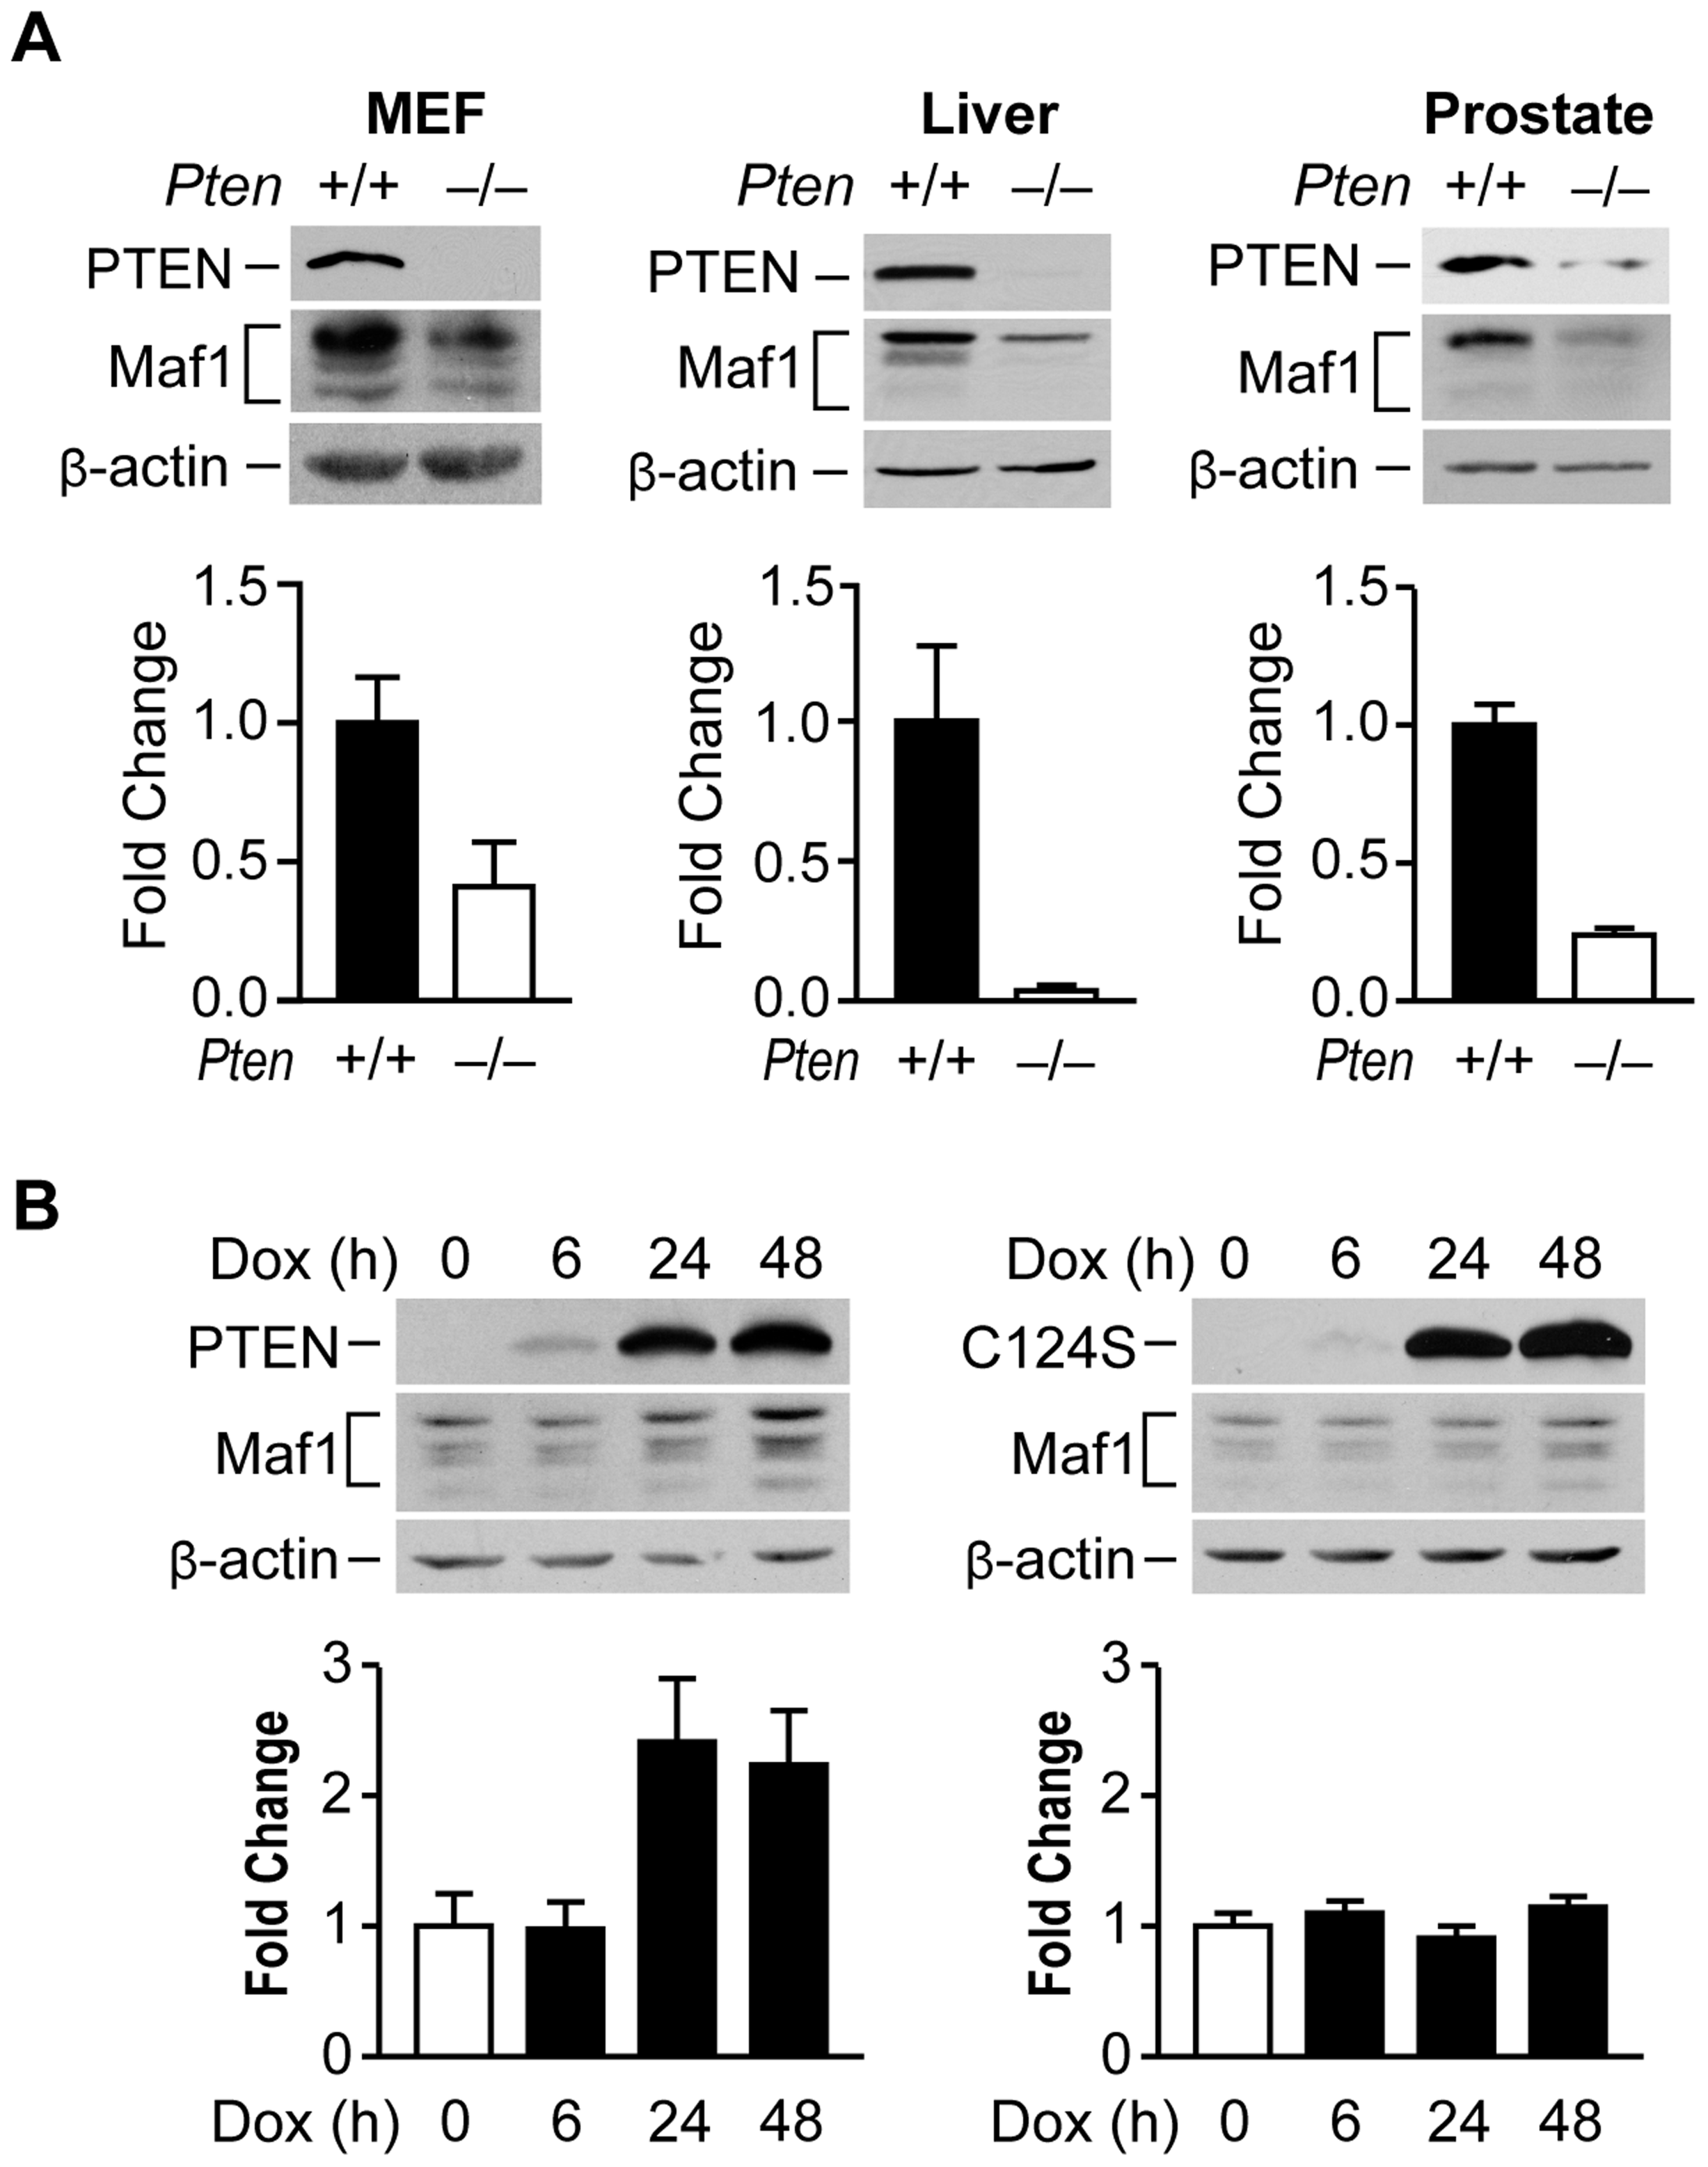 PTEN regulates Maf1 protein expression.